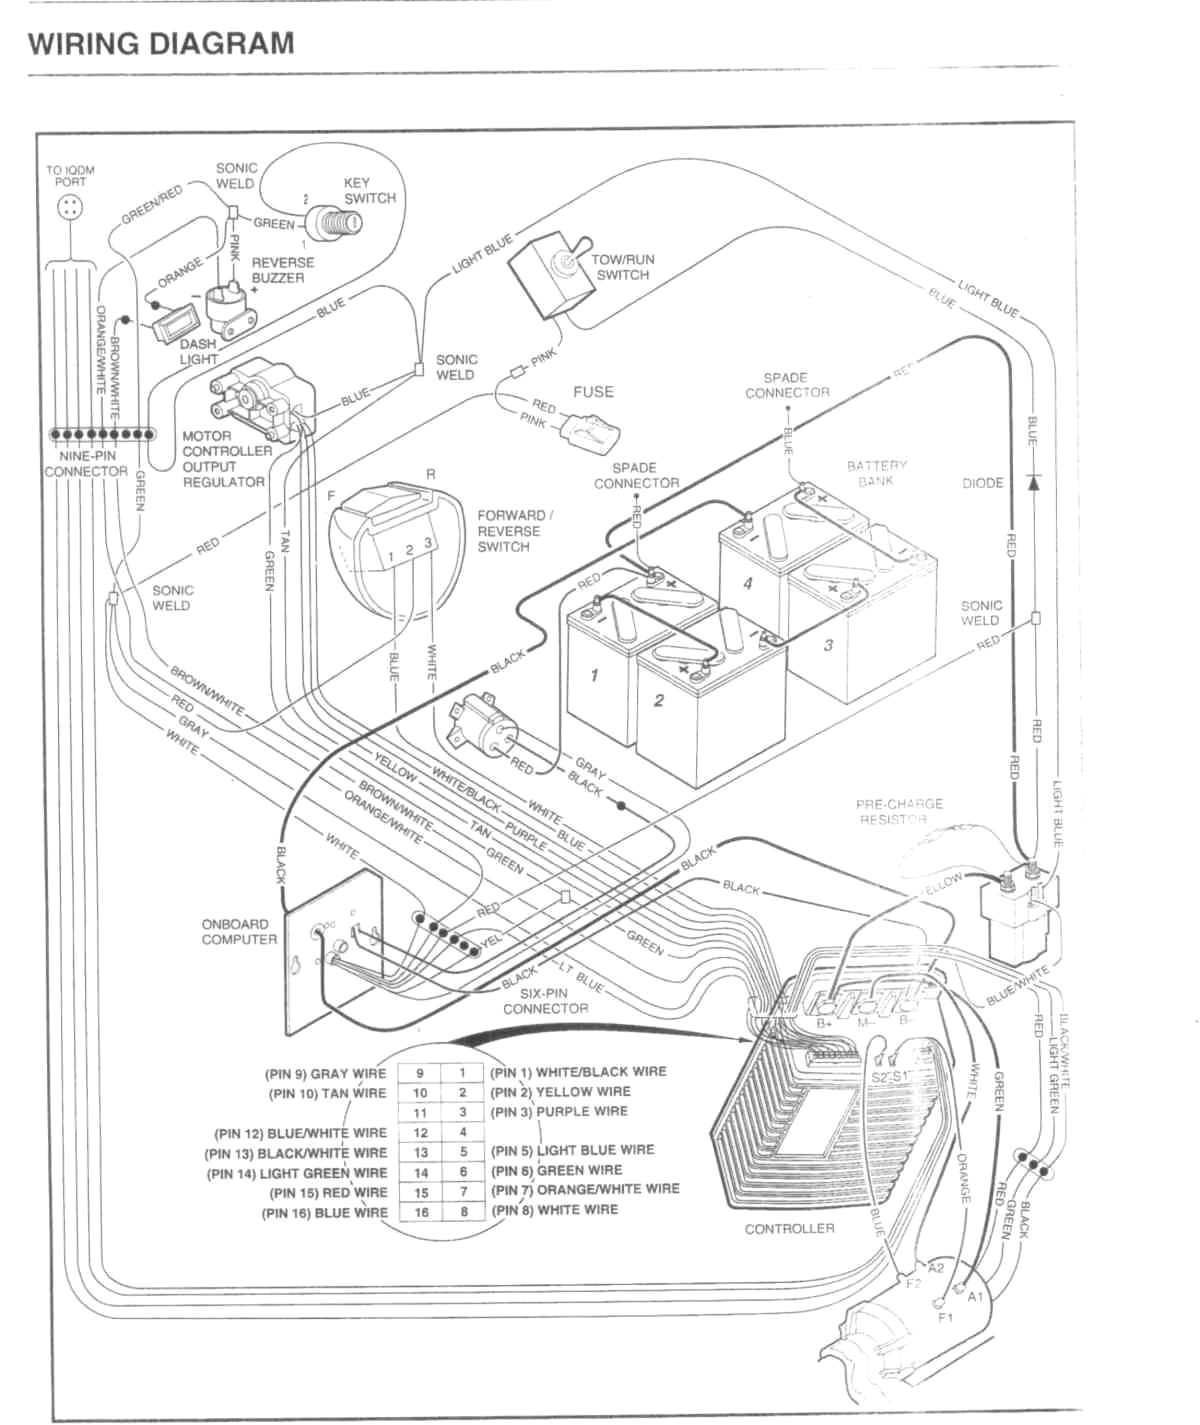 hight resolution of related with club car v glide wiring diagram